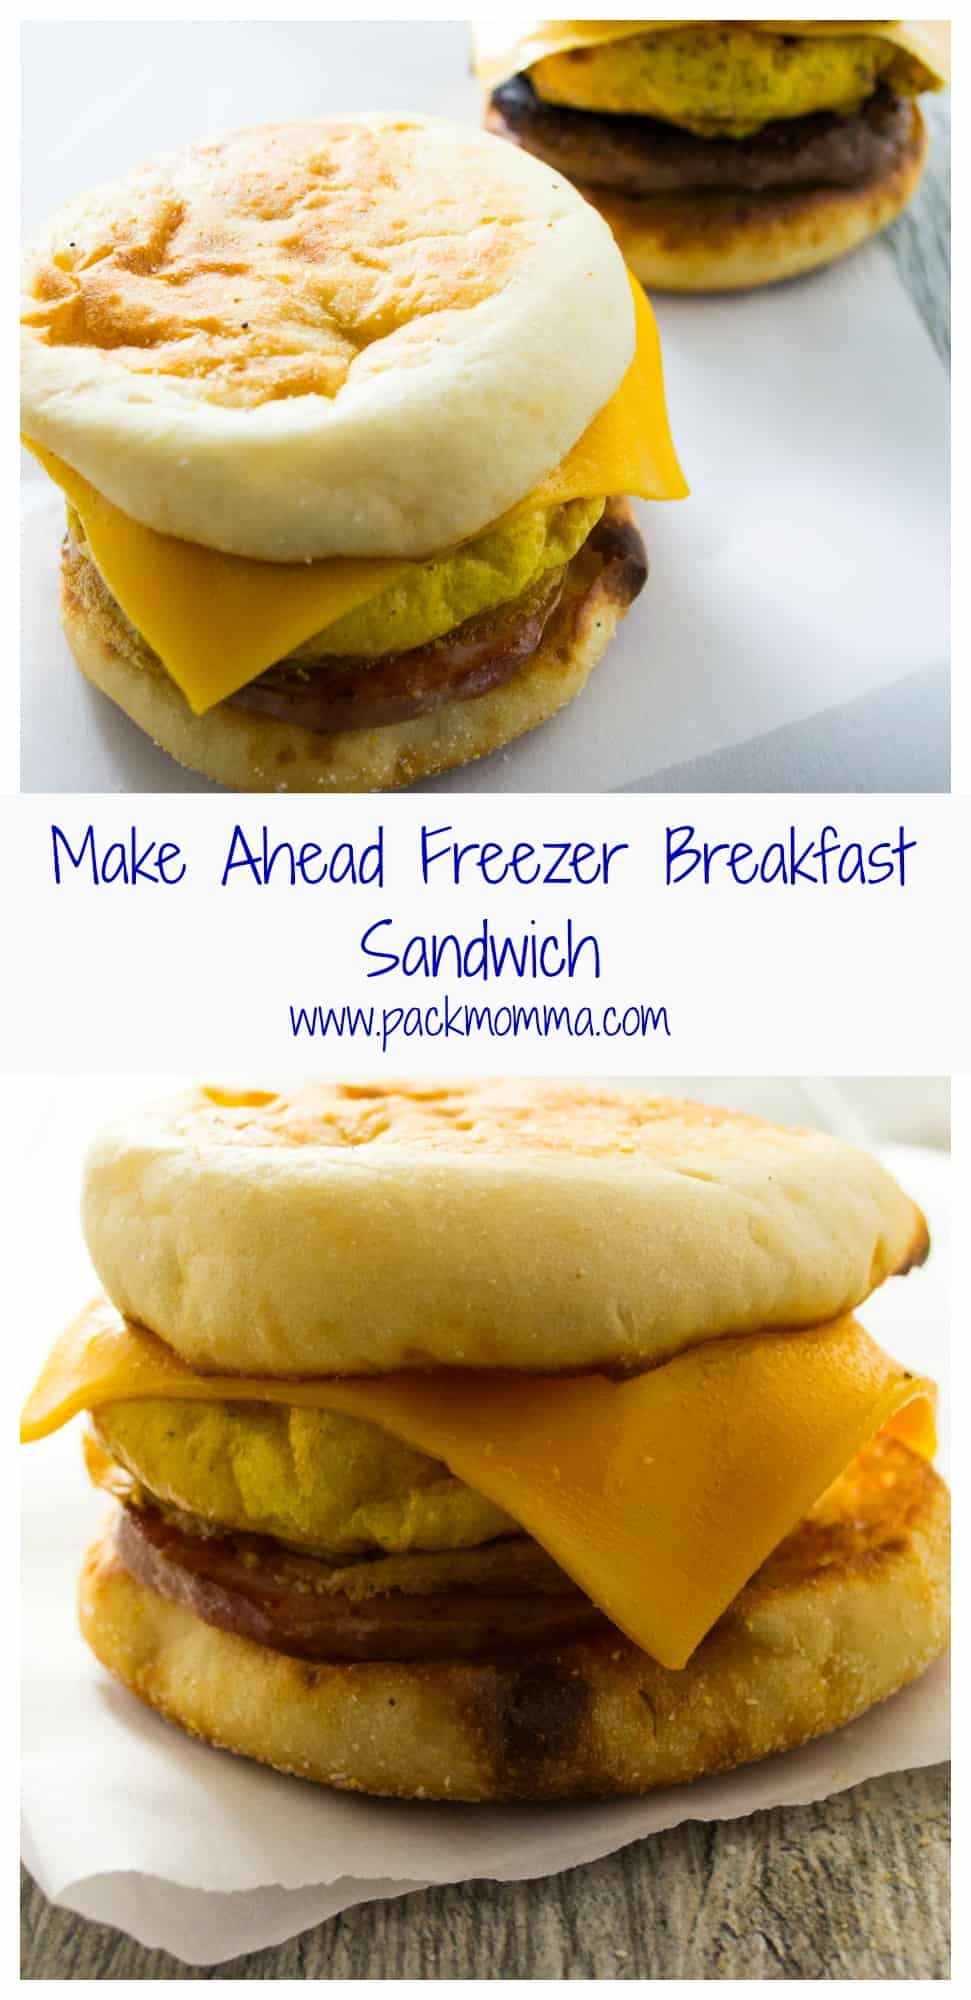 Make Ahead Freezer Breakfast Sandwiches | Make Ahead Freezer Breakfast Sandwich will save you time in the morning and feed your family a healthy, nutritious breakfast as you are flying out the door! | Pack Momma | https://www.packmomma.com